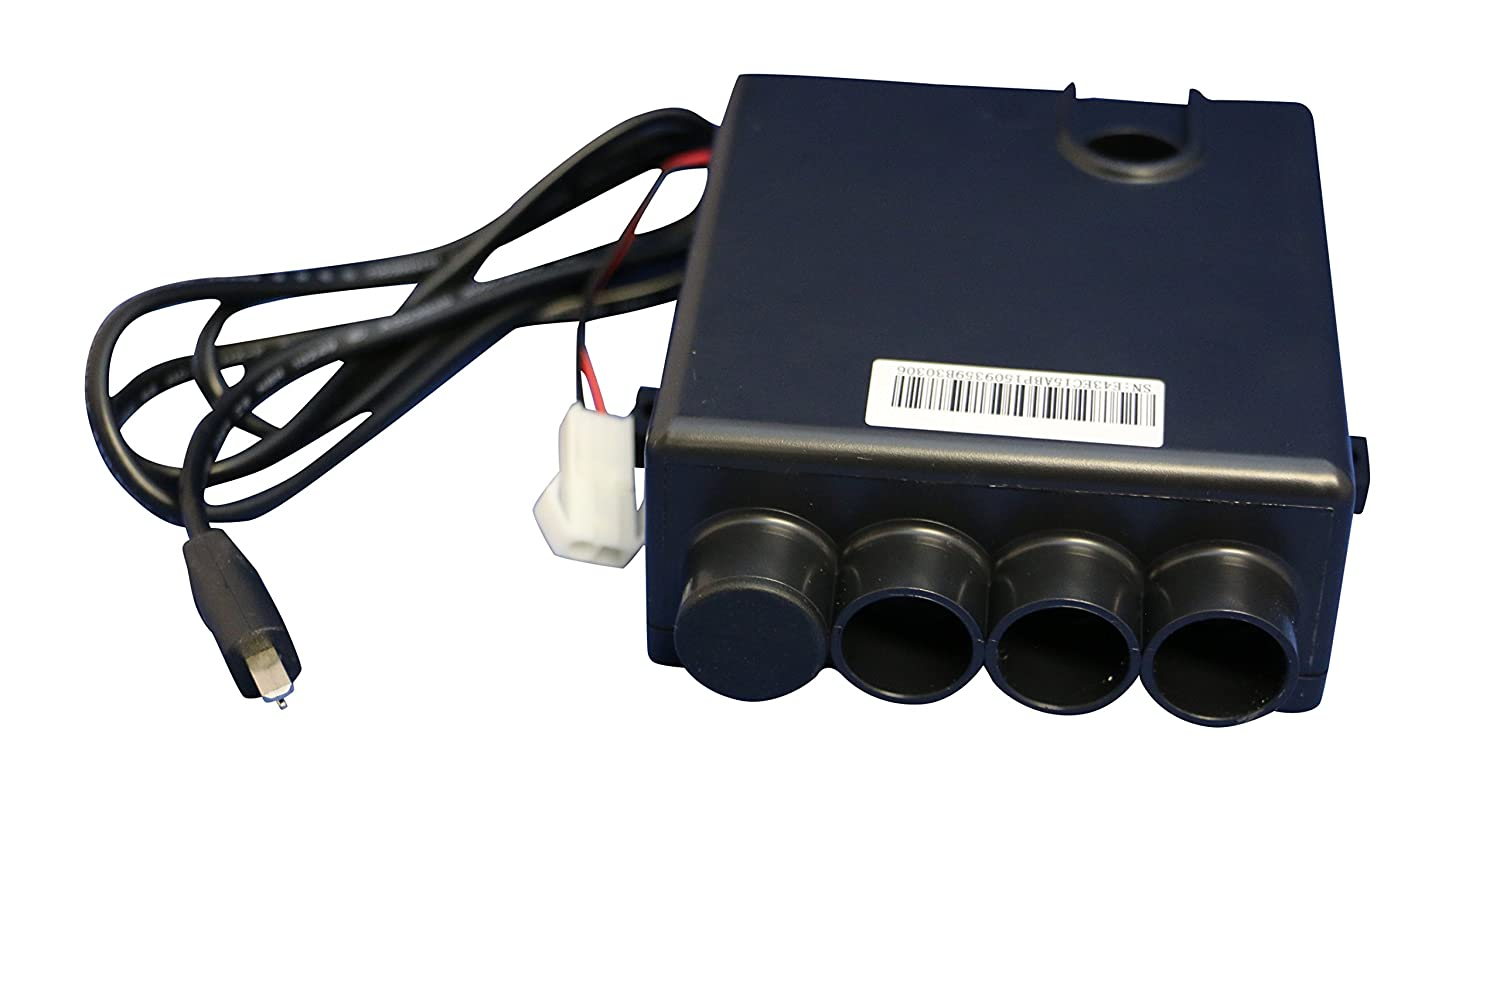 Motor and Cupholder Control Box for Power Recliners/Sofas, HX43HMR2A